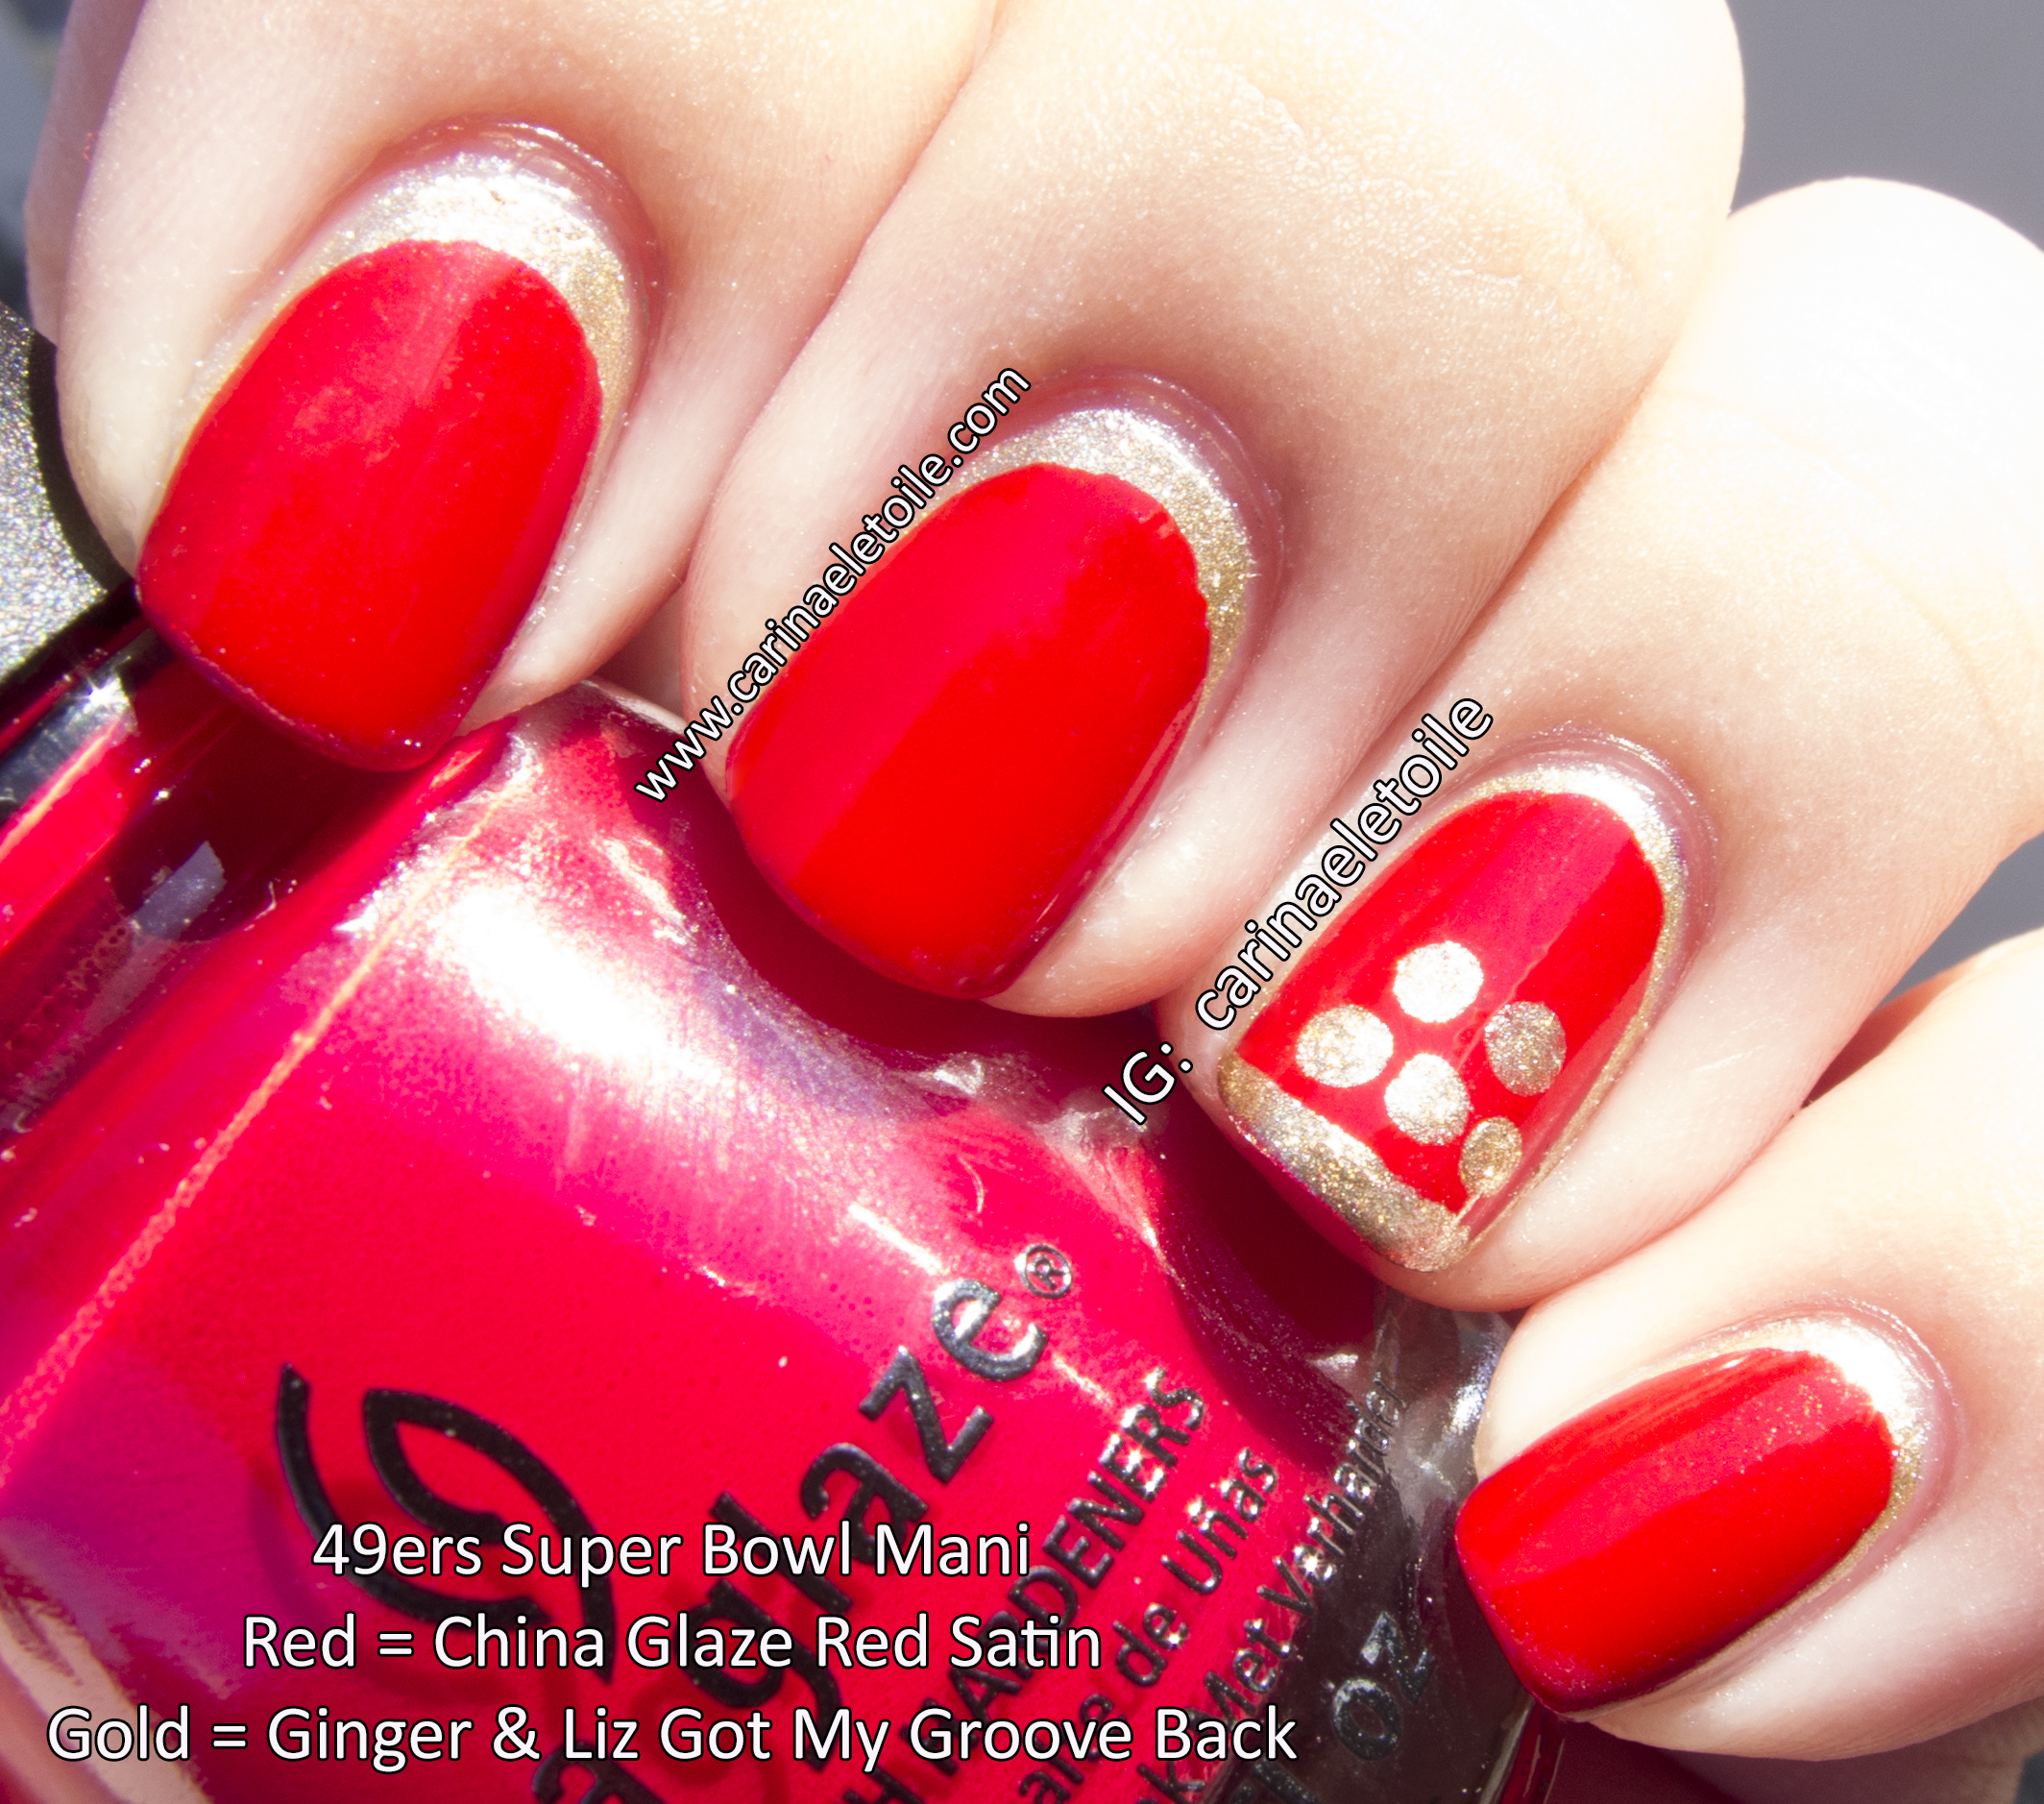 49ers Super Bowl Mani - Feb 3, 2013